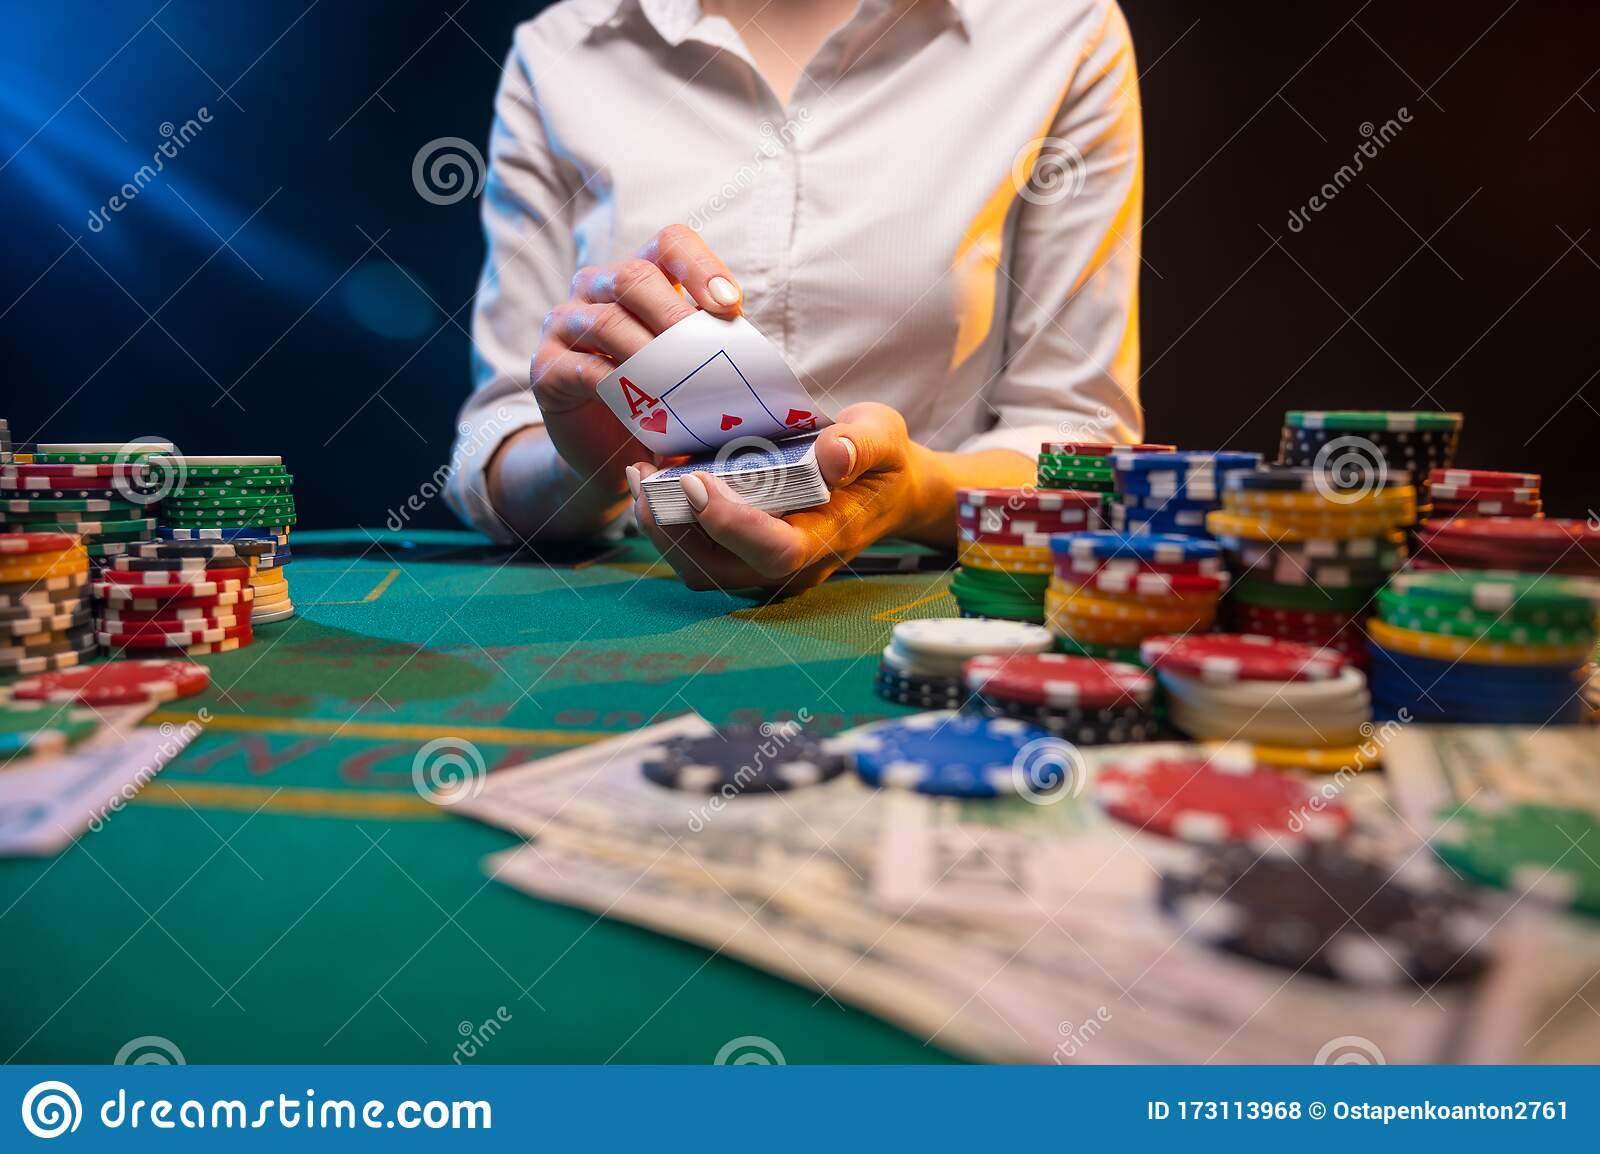 Club Gold Casino Withdrawal Time